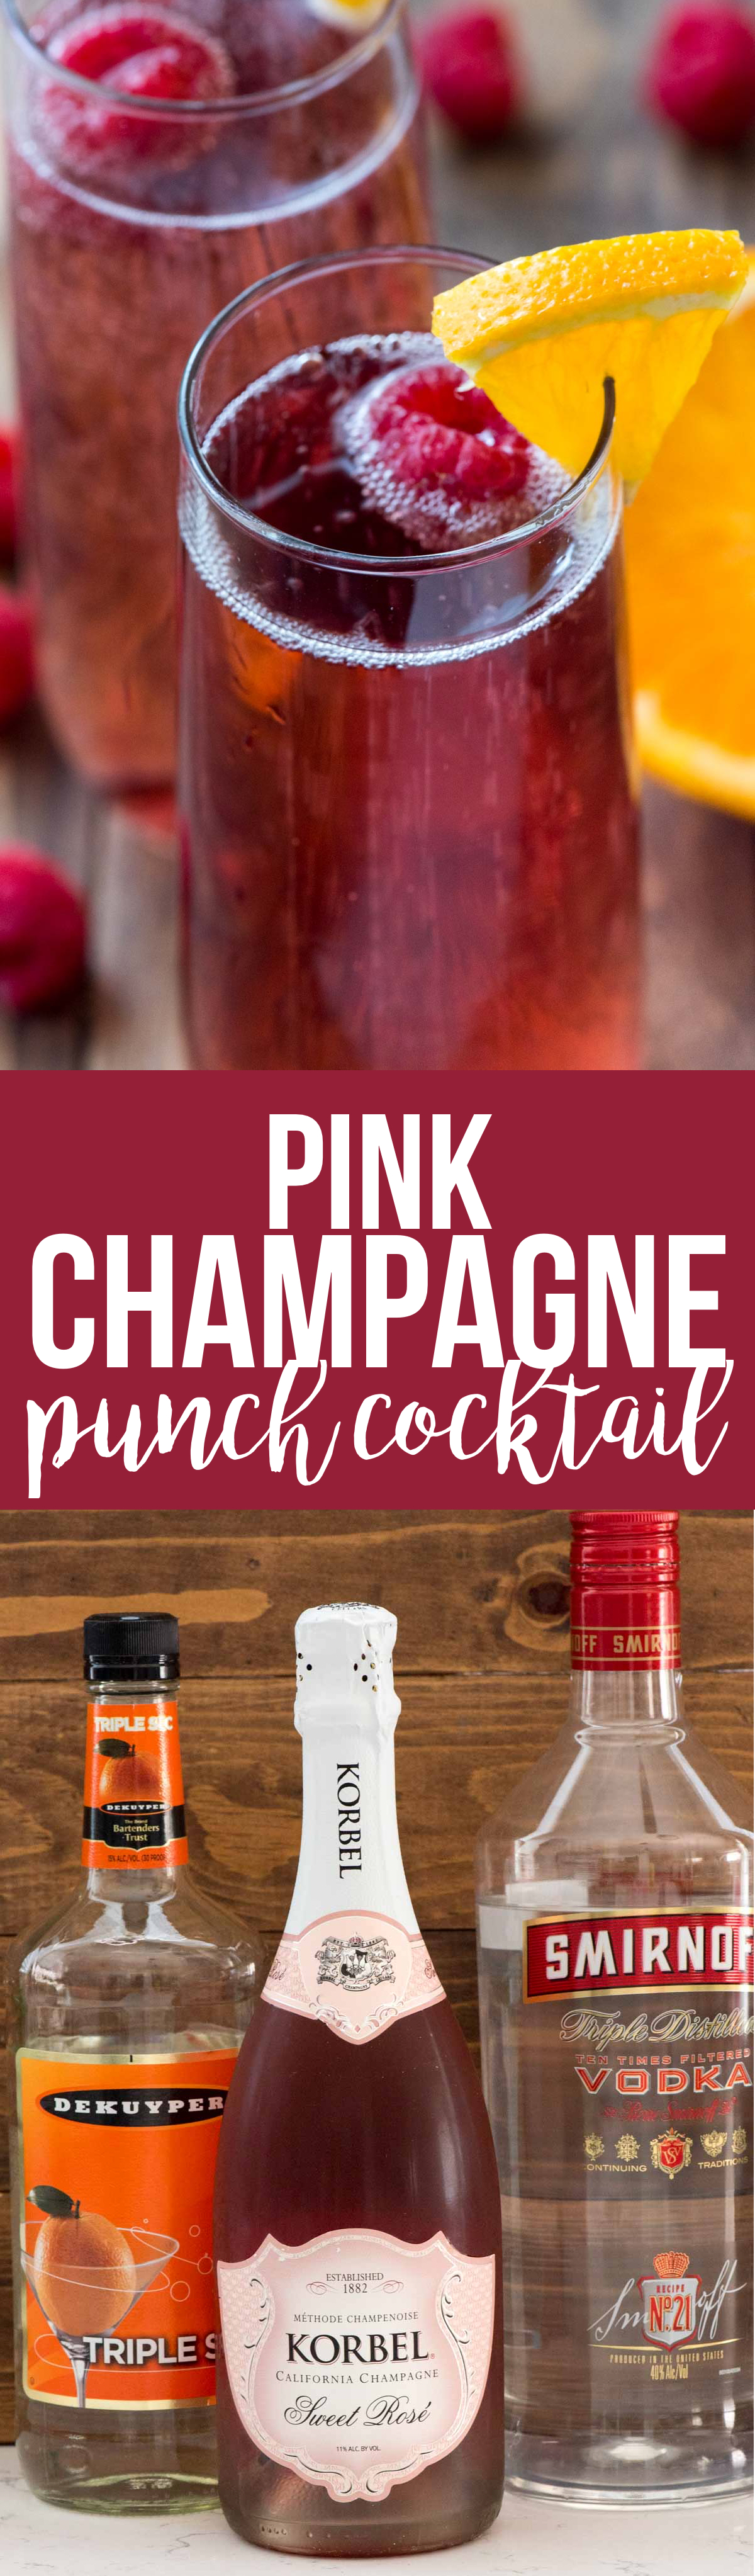 Pink Champagne Punch Cocktail is the perfect drink recipe for any occasion. Just three ingredients and it's pretty enough for a birthday, Christmas, or New Years Eve!